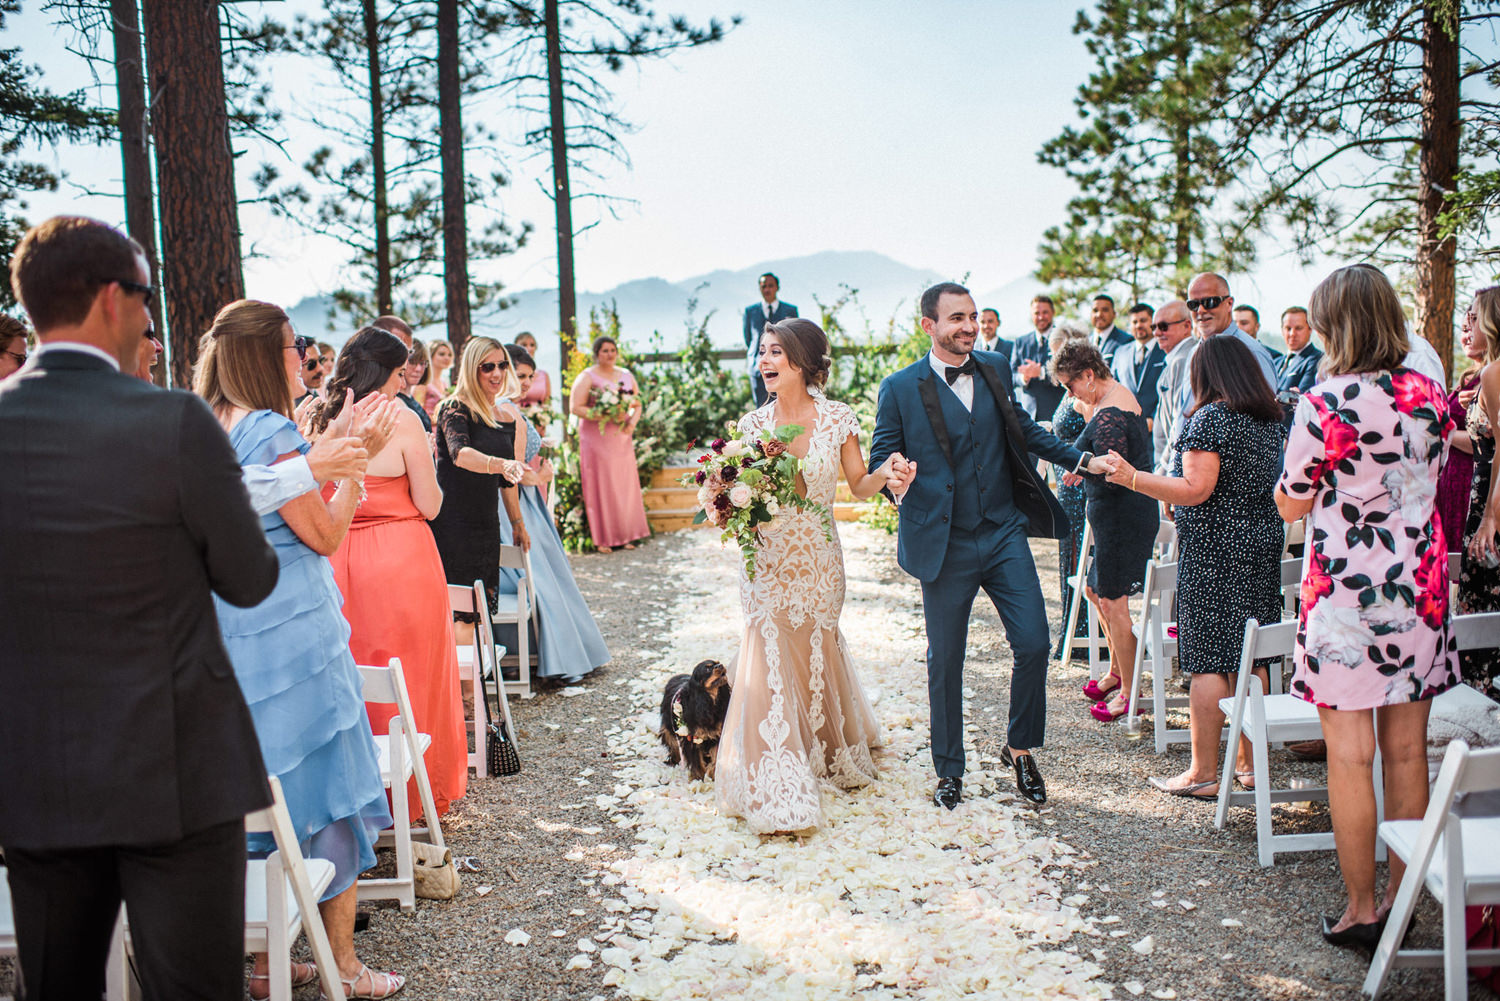 280-bright-coral-wedding-with-sinclair-and-moore-at-suncadia-resort.jpg